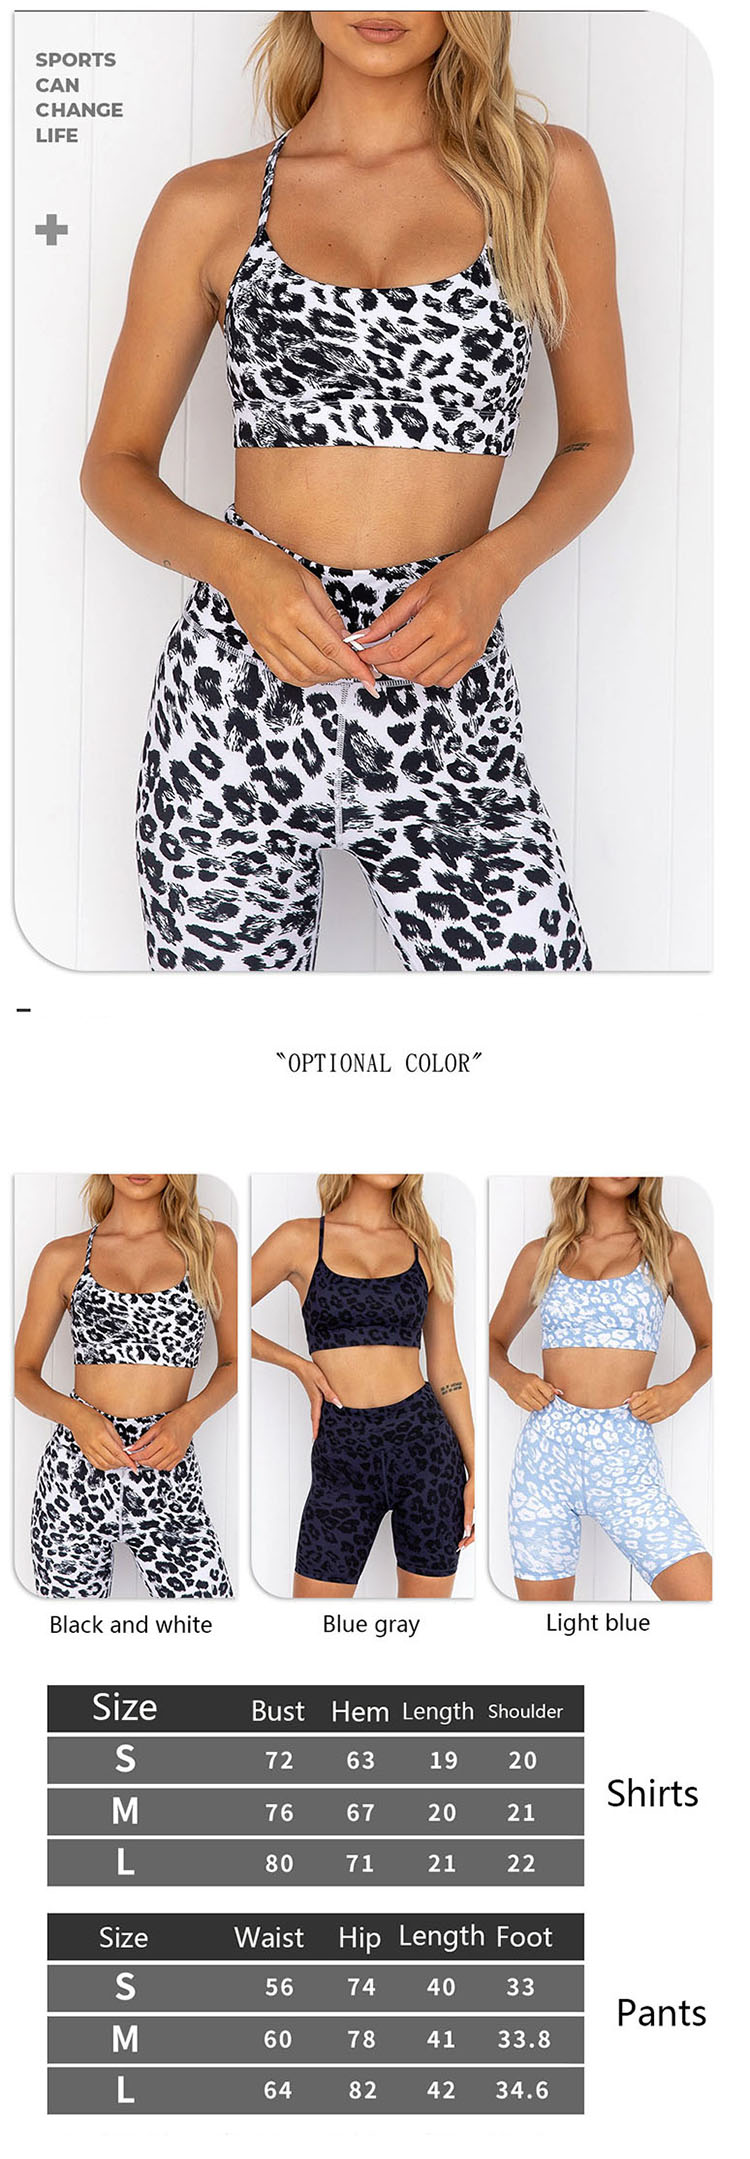 Leopard yoga pants is used to simplify the shape